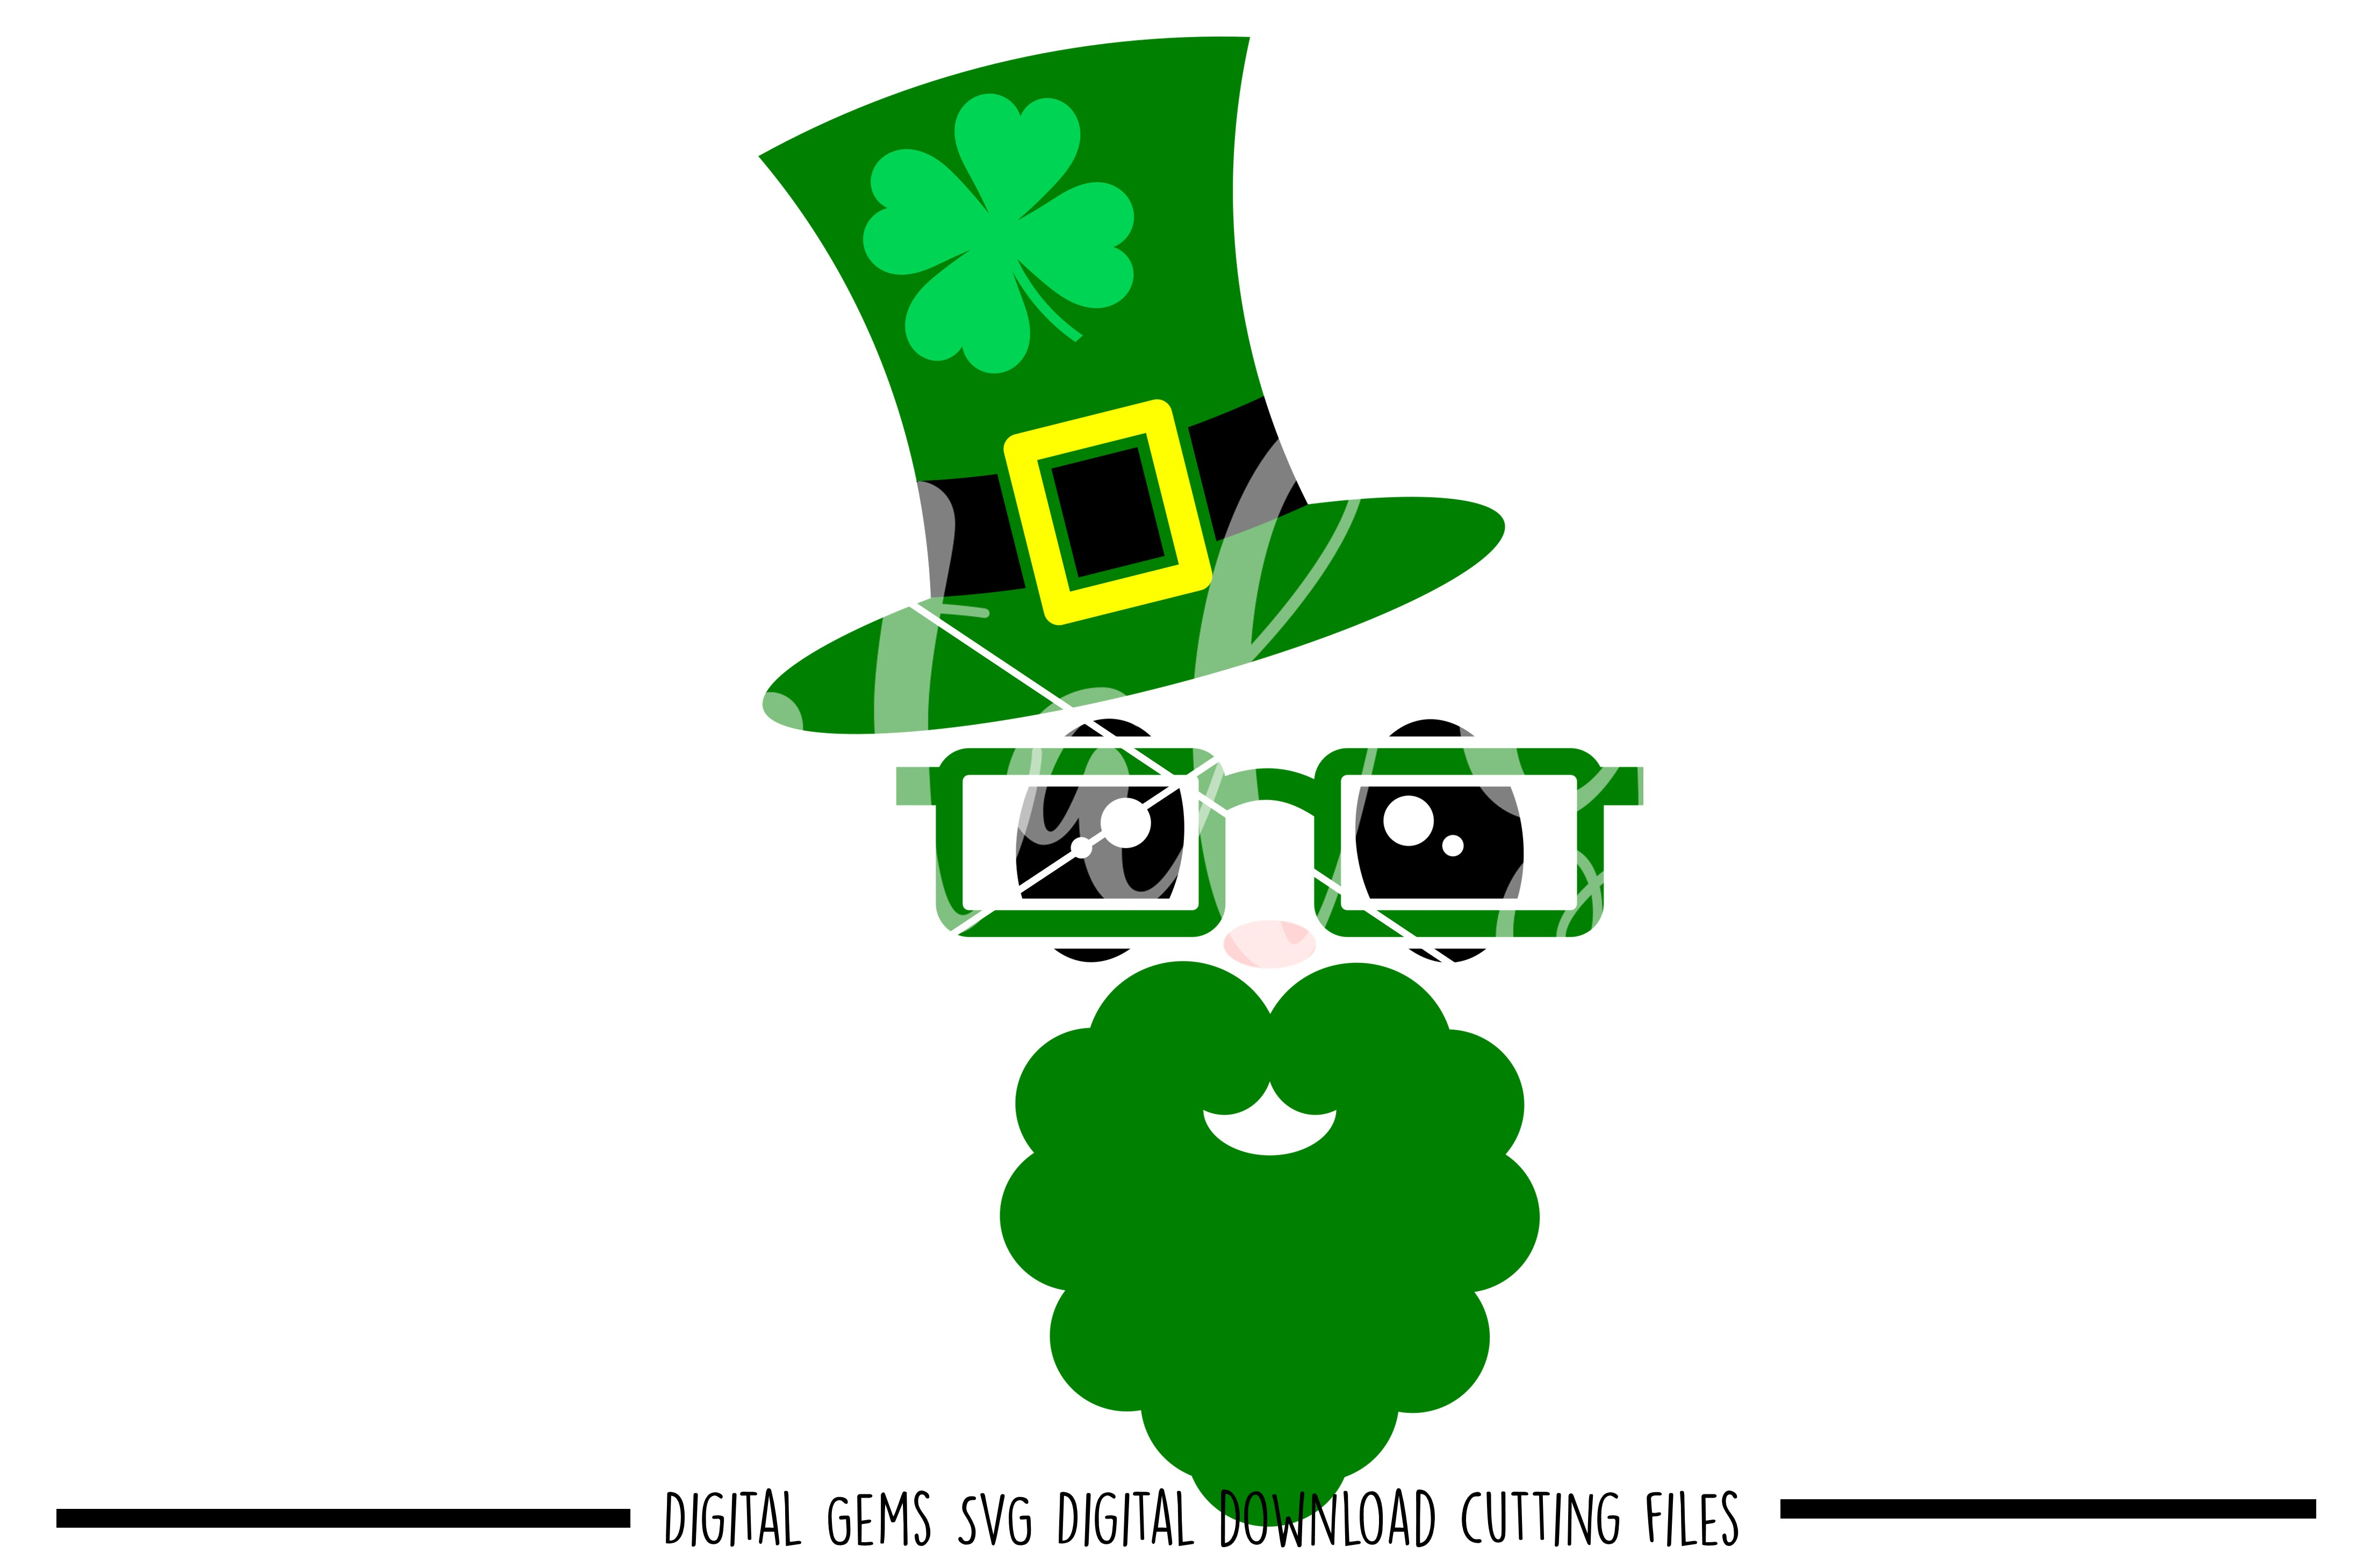 St Patrick's Day leprechaun SVG / PNG / EPS / DXF Files example image 1